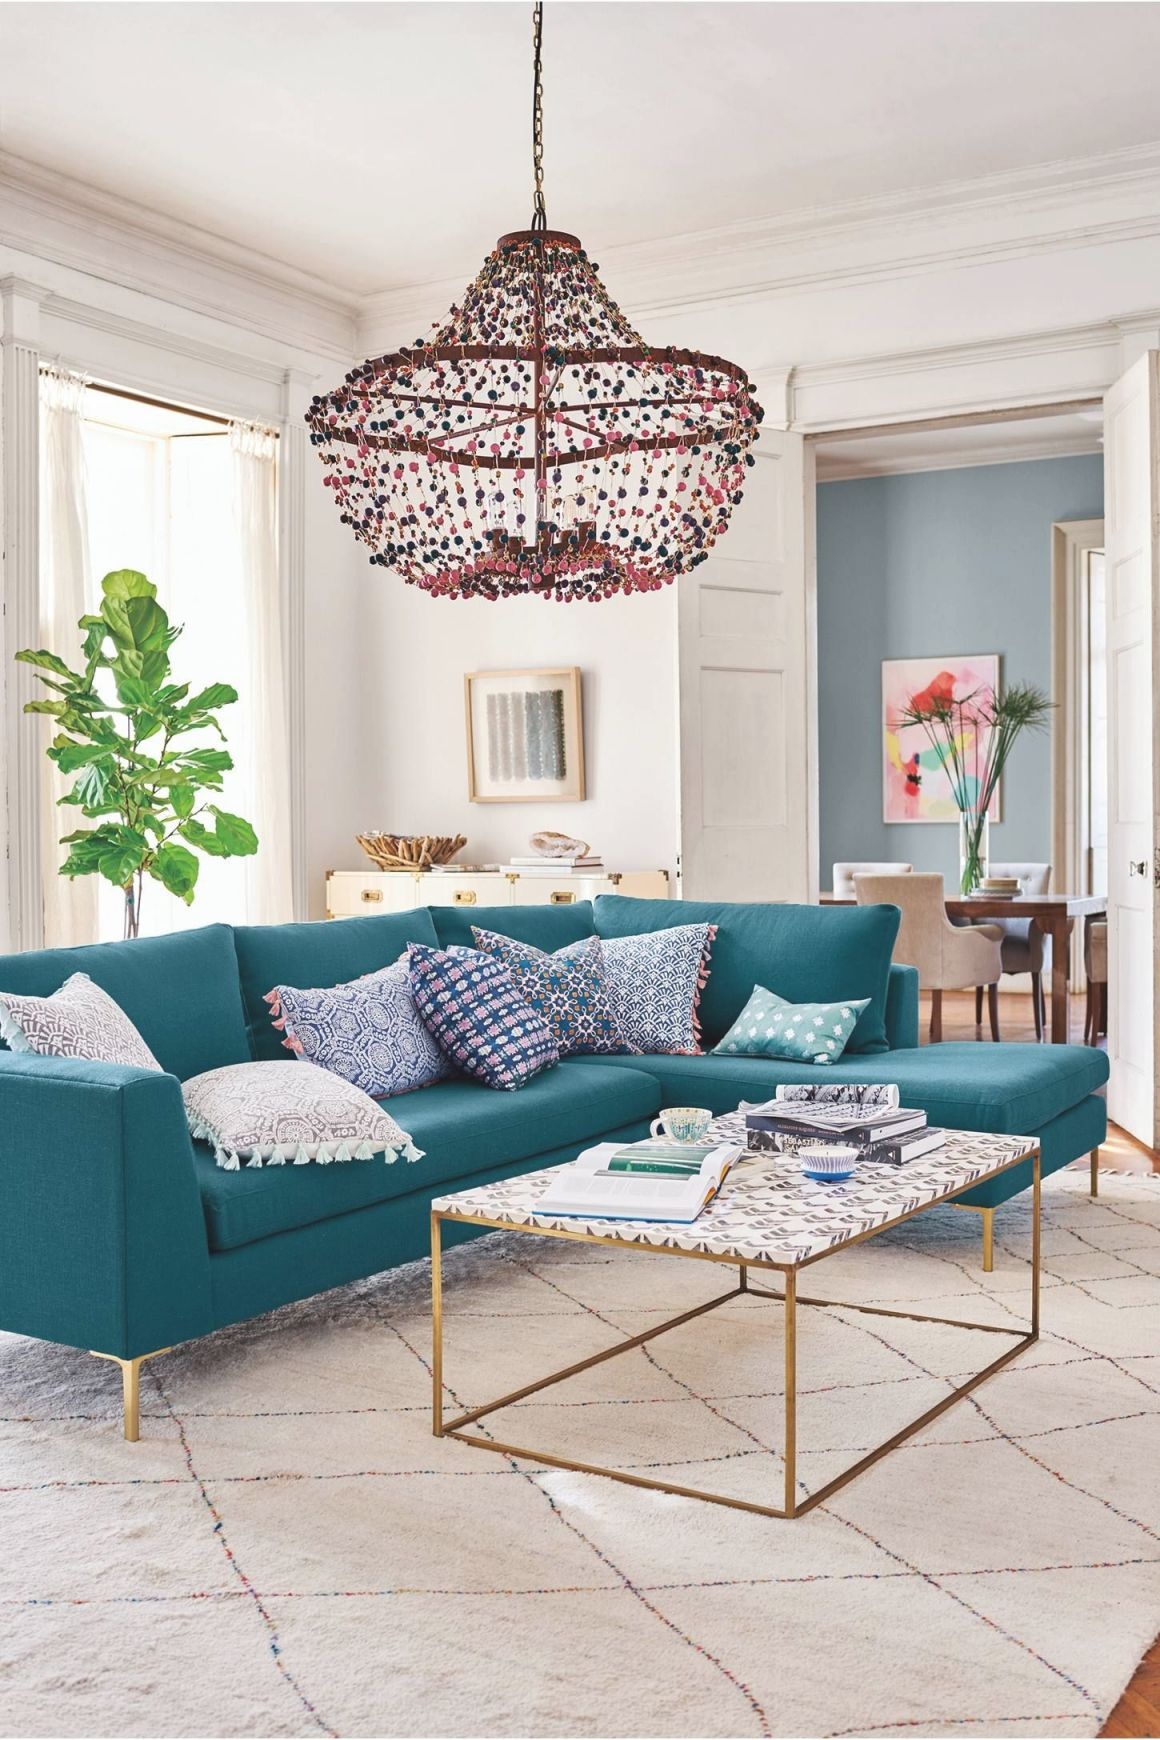 The Inspired Home | Home Decor | Teal Sofa, Living Room Sofa in Teal Living Room Furniture